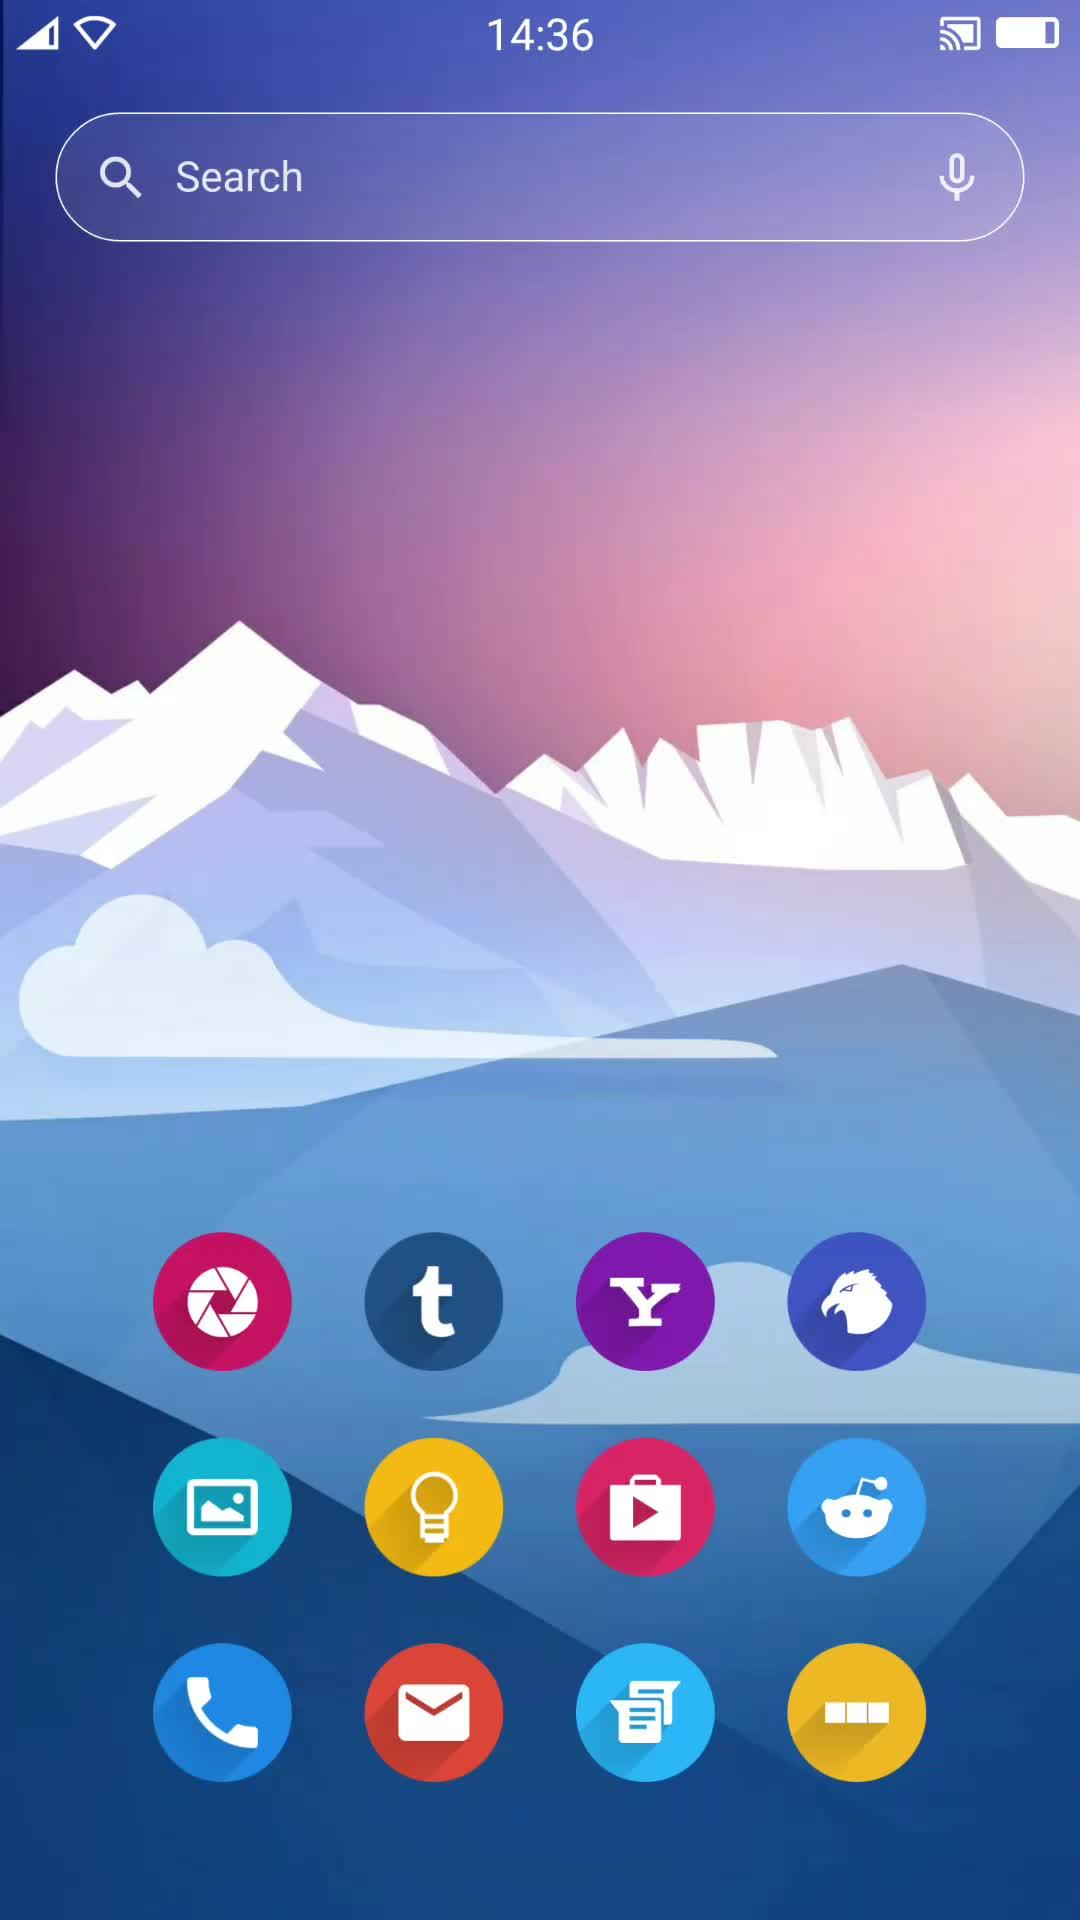 Android, android, [KLWP] Fullscreen widgets with blur (reddit) GIFs